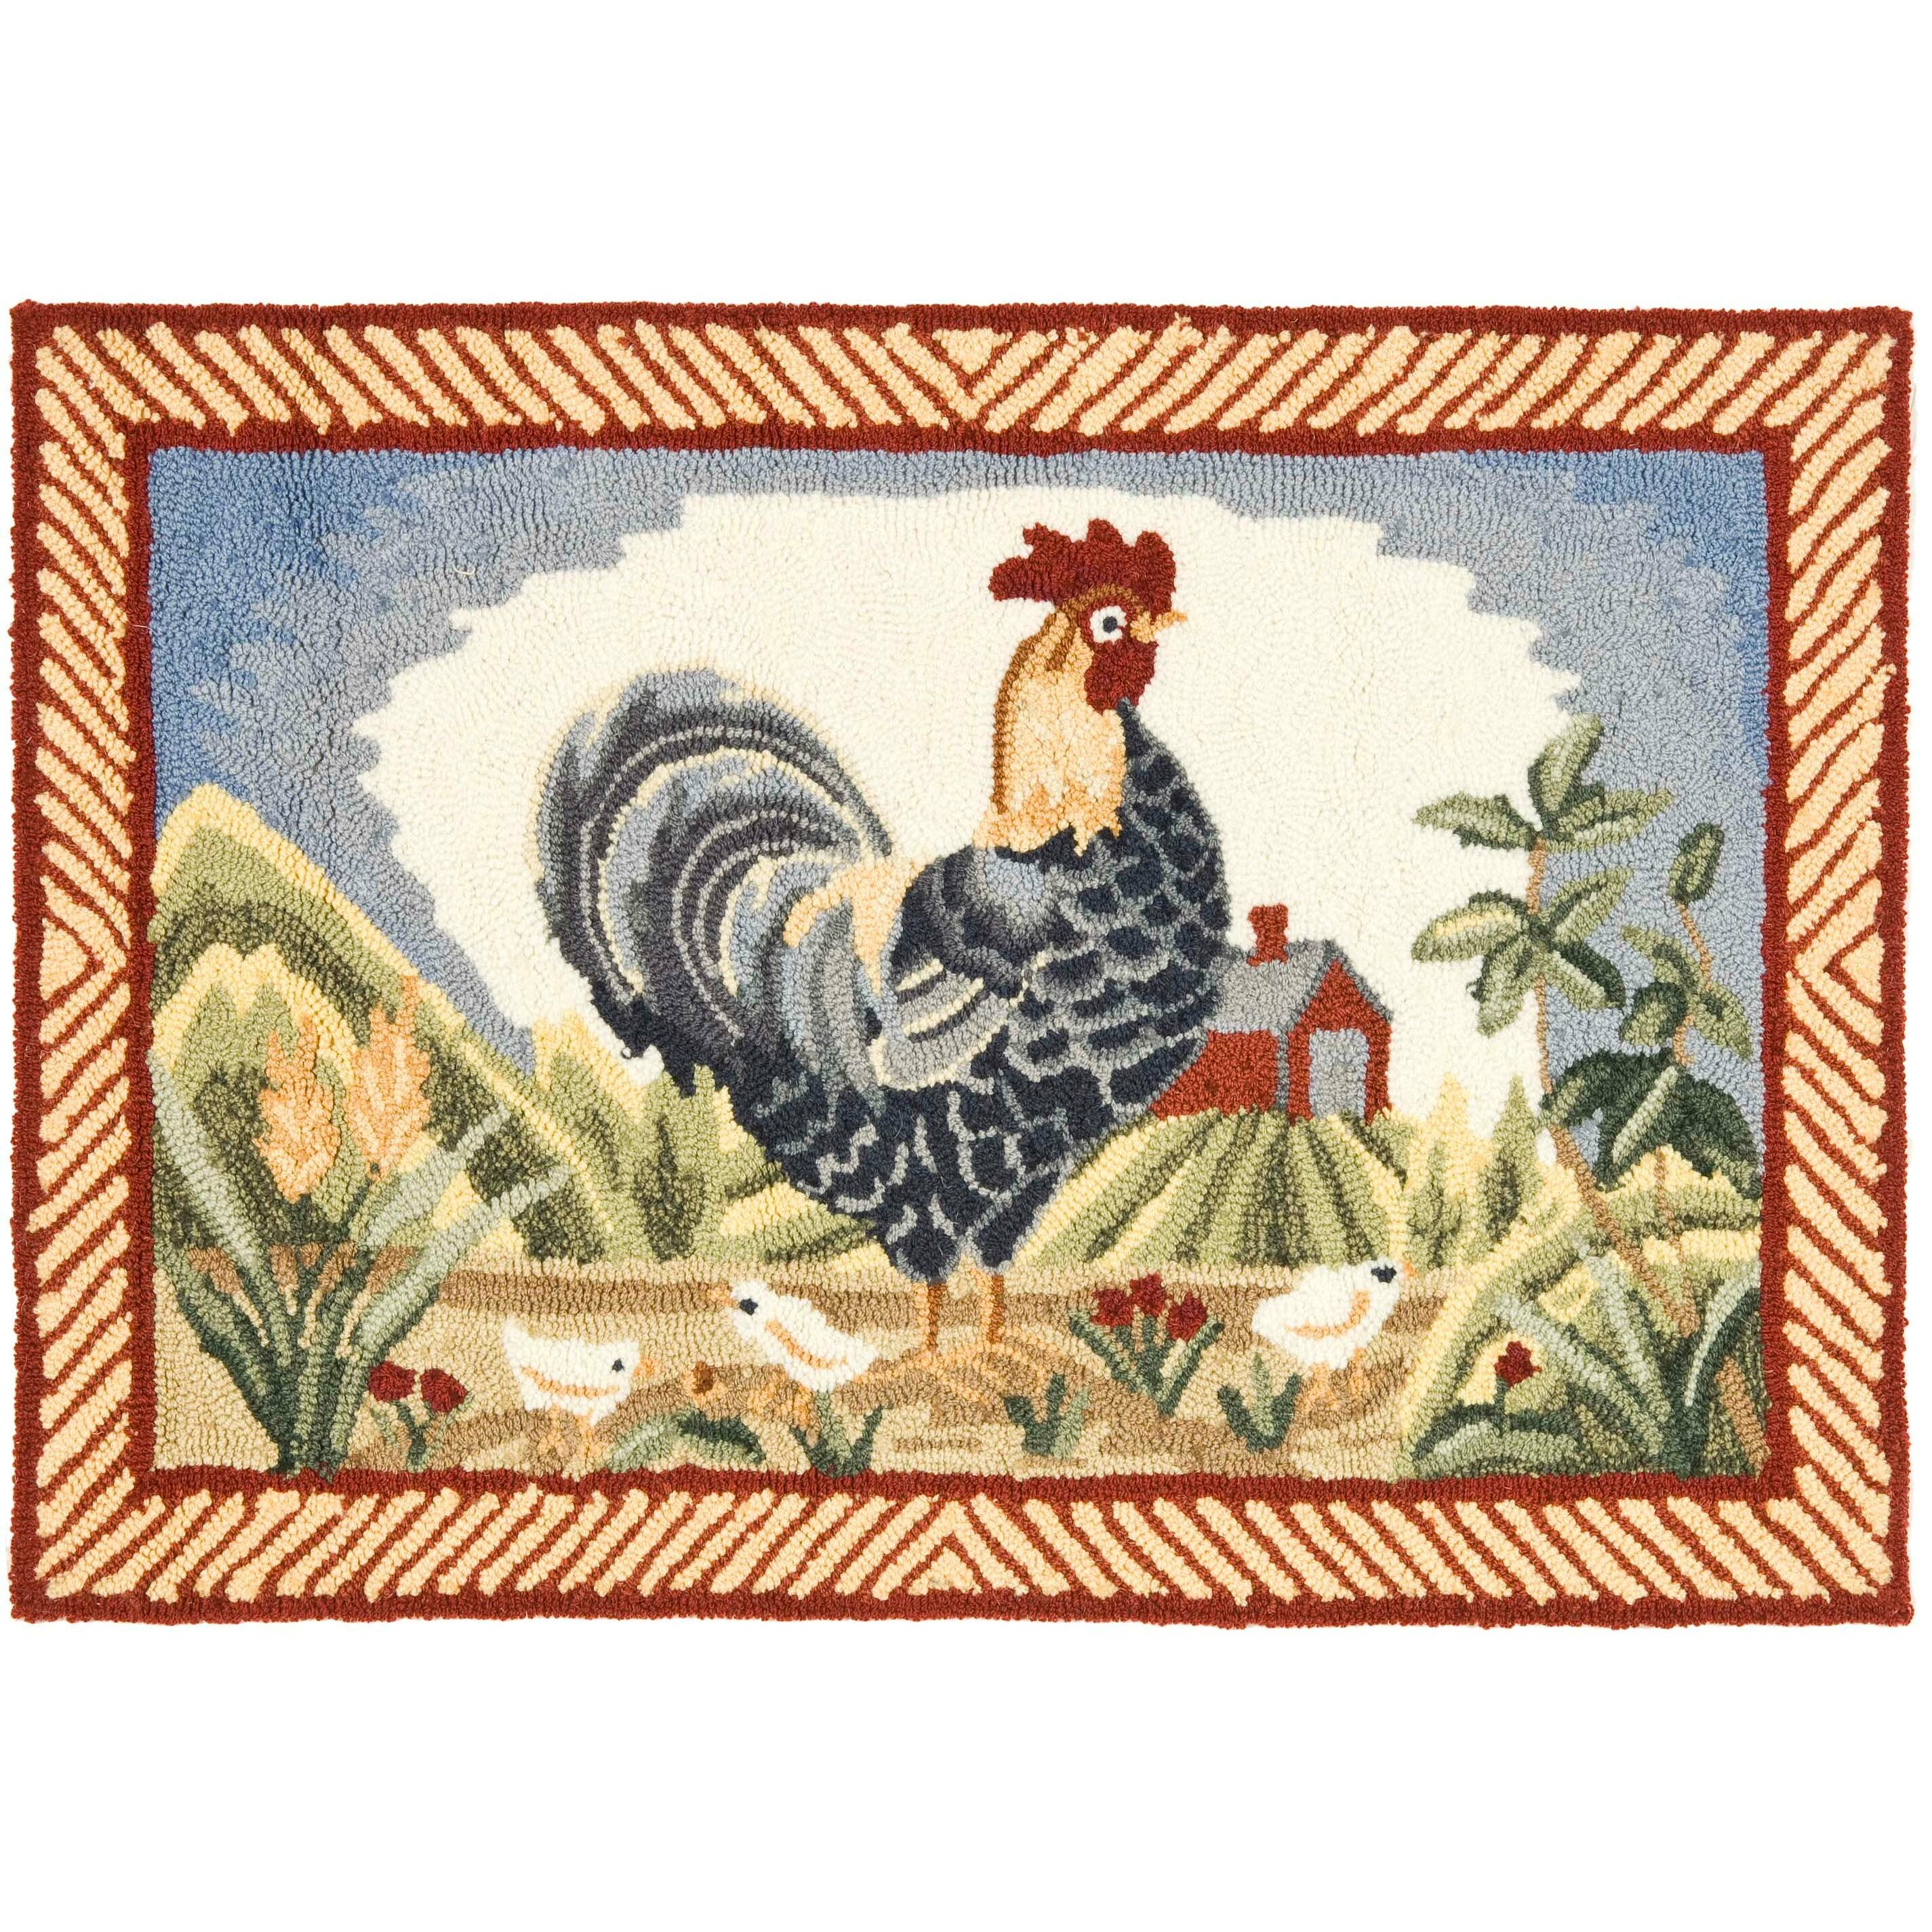 Rooster Area Rugs Kitchen Safavieh Durarug Blue Rooster Area Rug Reviews Wayfair